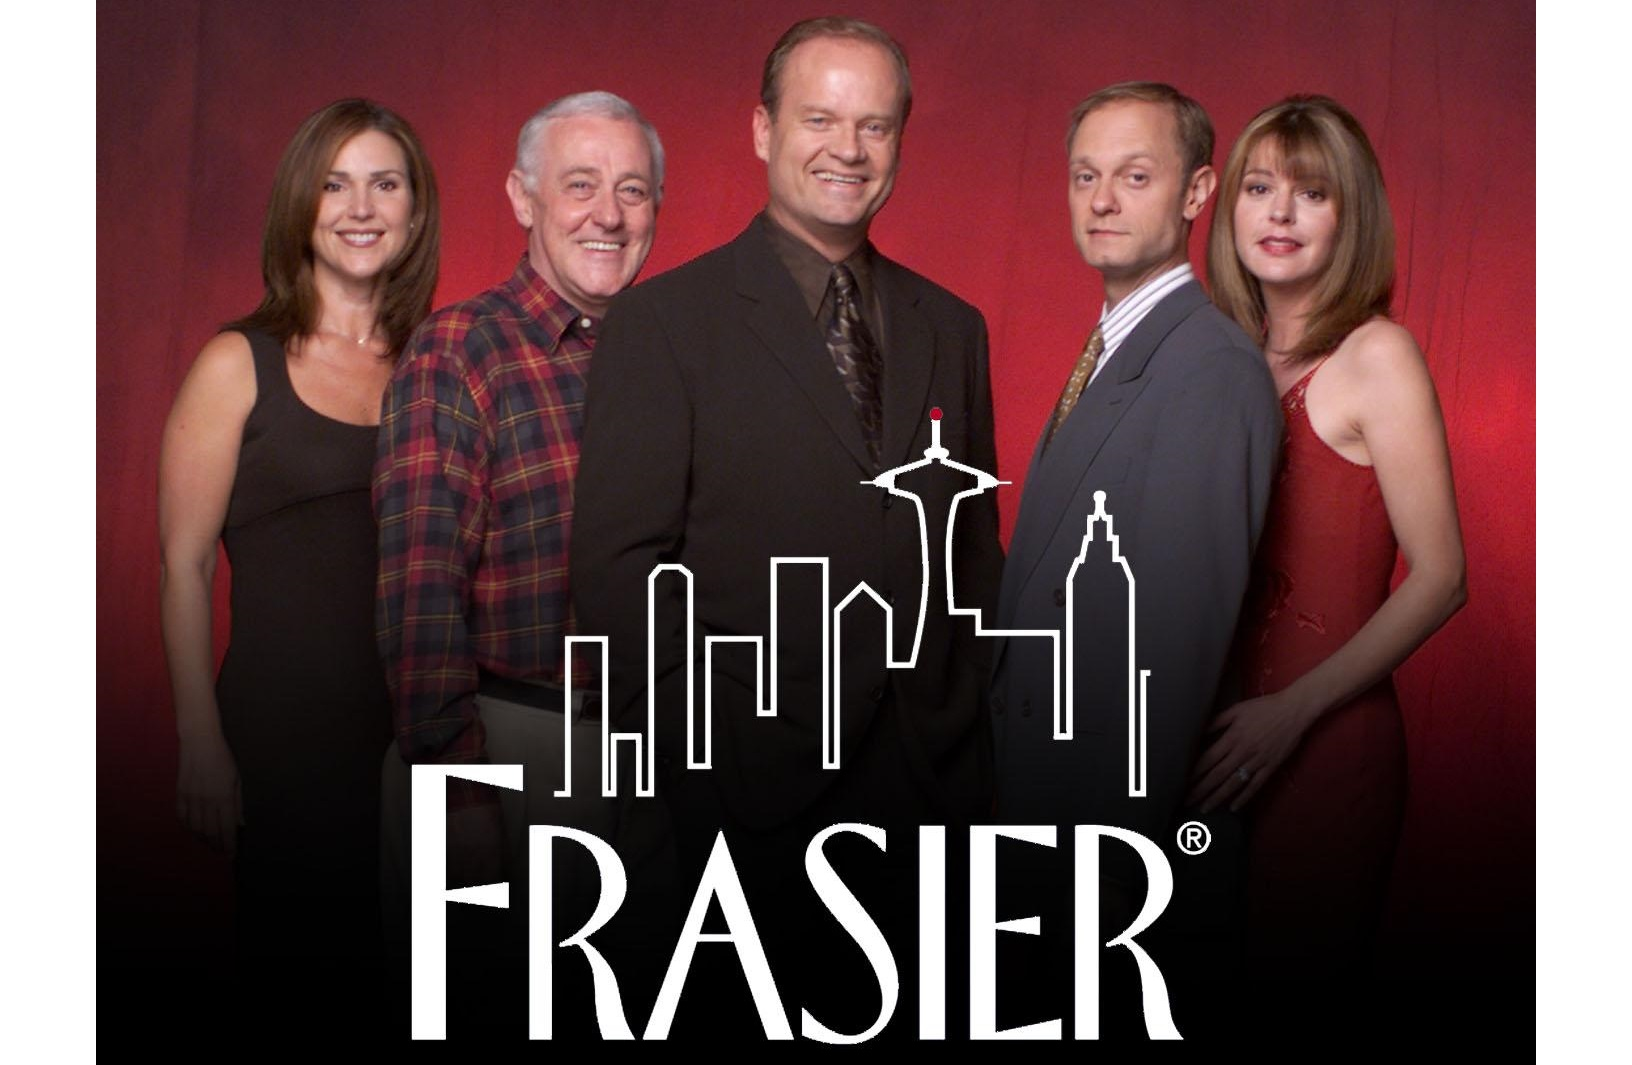 Celebrating Frasier Tv S Best Comedy Spinoff Den Of Geek